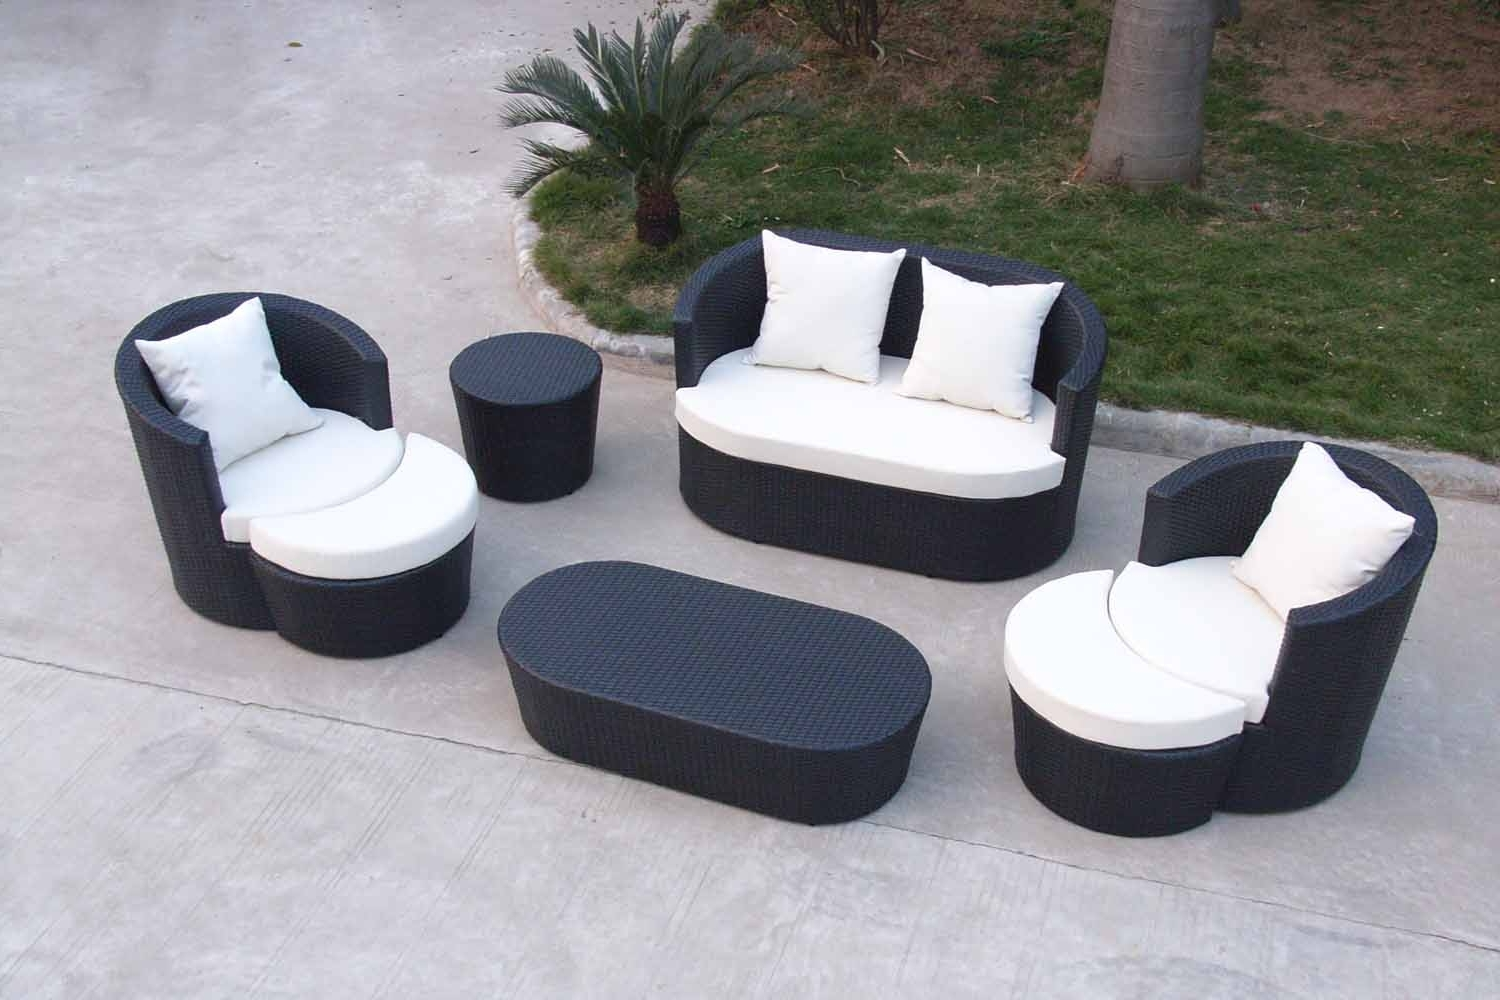 Popular Outdoor Sofa Chairs With Regard To Sofa : Outdoor Patio Furniture Sofa Sets Outdoor Furniture Sofa (View 7 of 15)